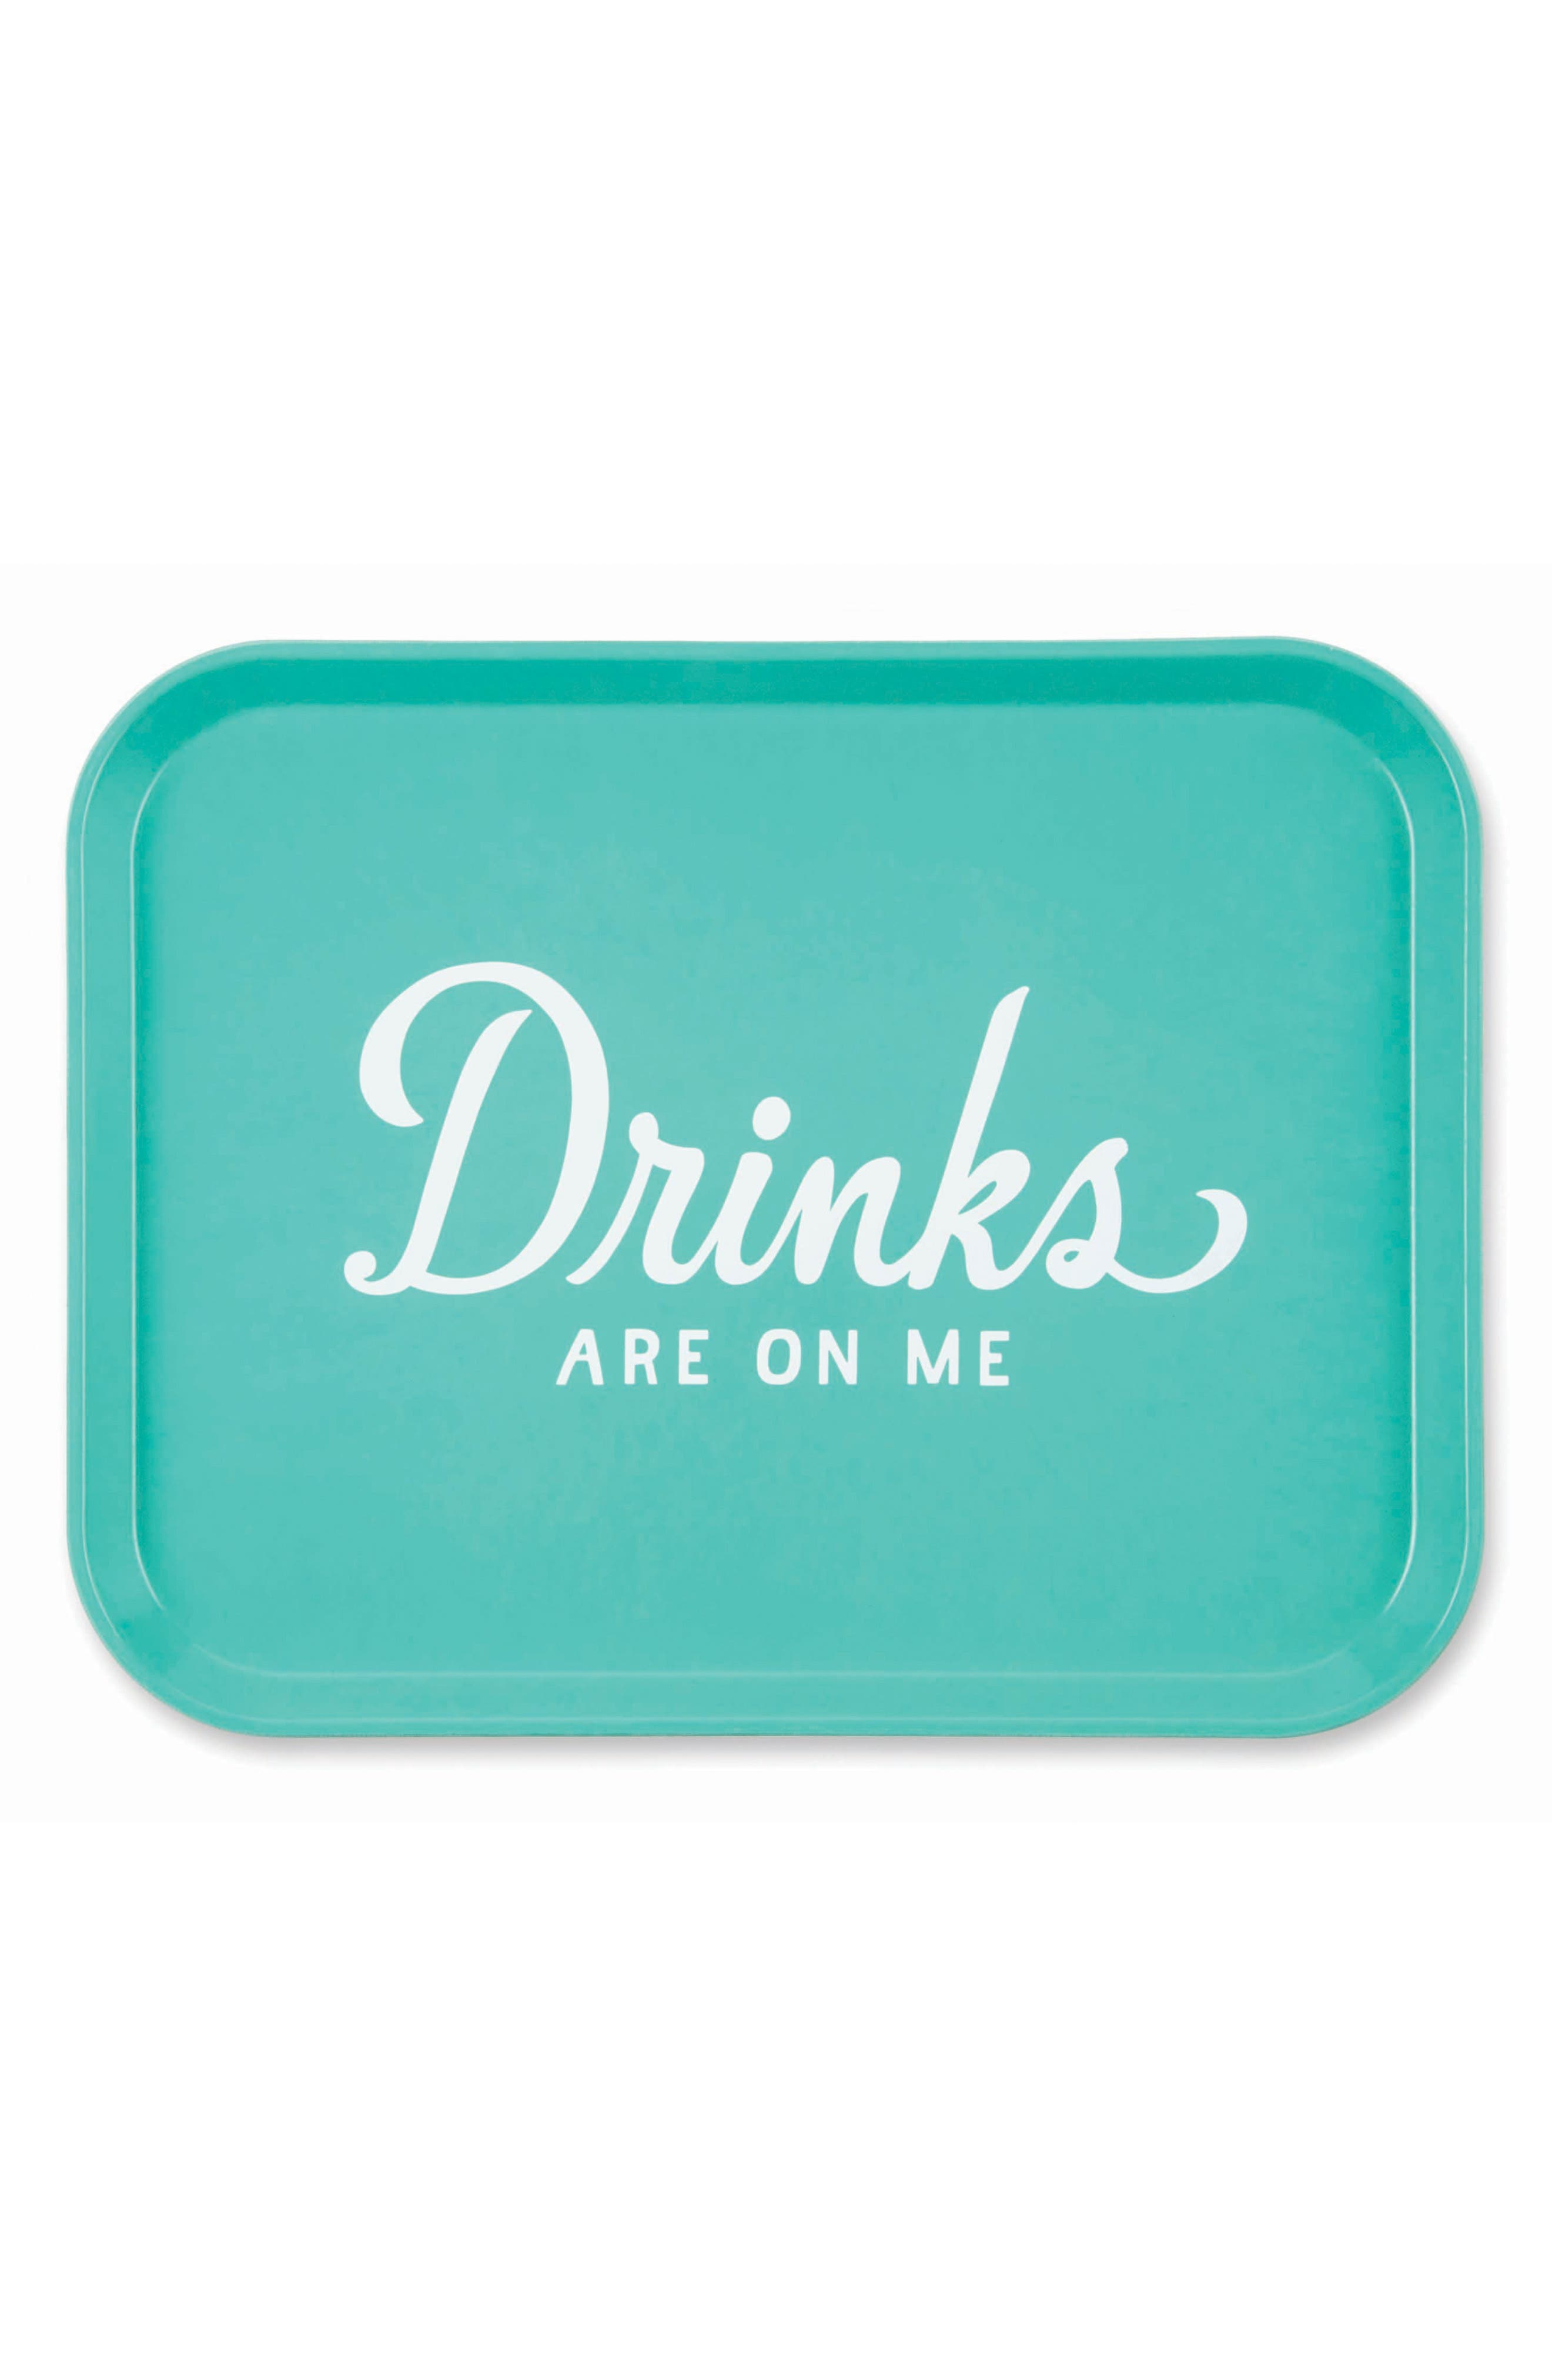 Drinks Are on Me Tray,                             Main thumbnail 1, color,                             440